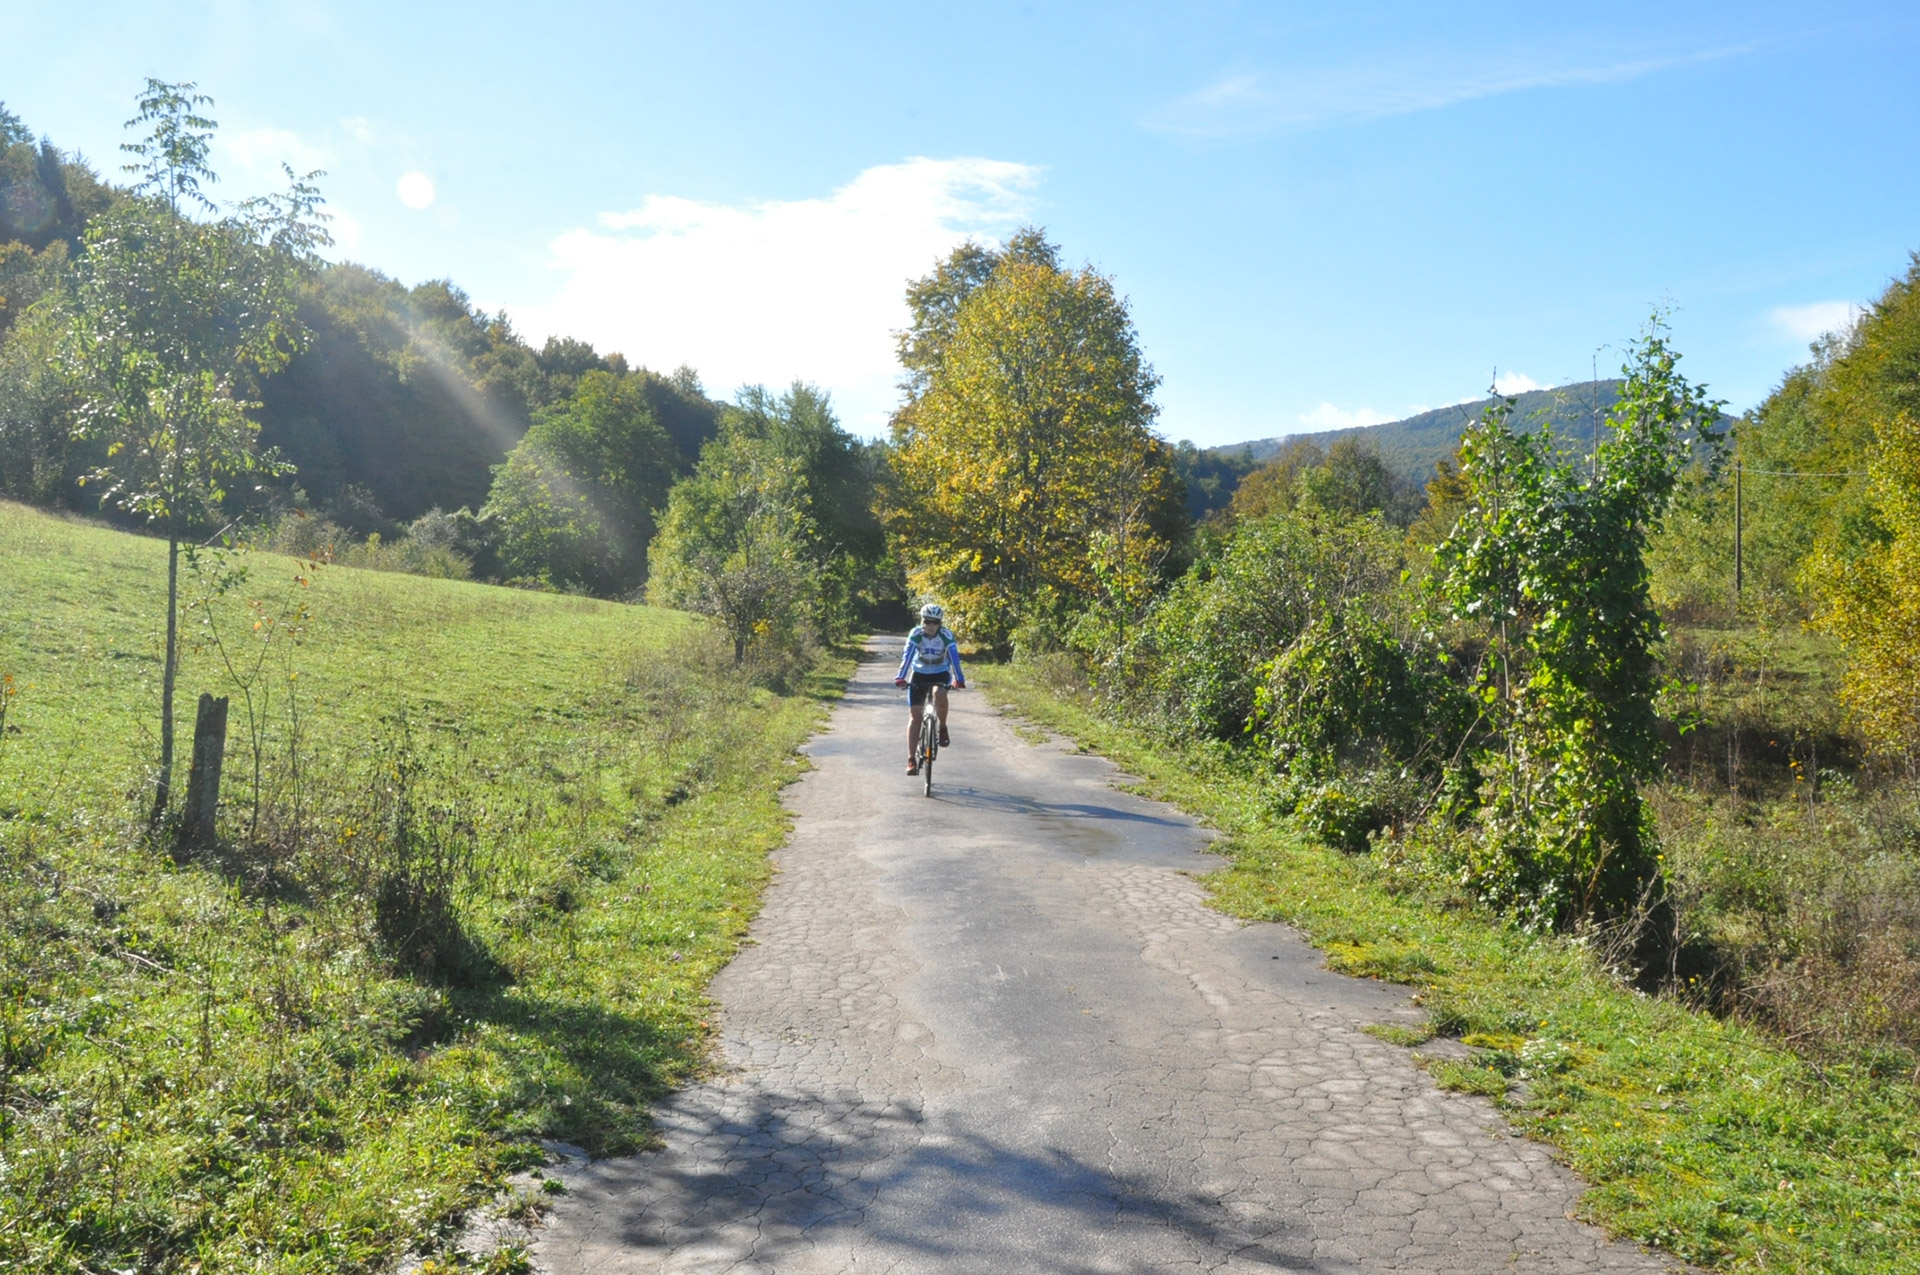 Cycling Tour Of Plitvice Lakes Area With Huck